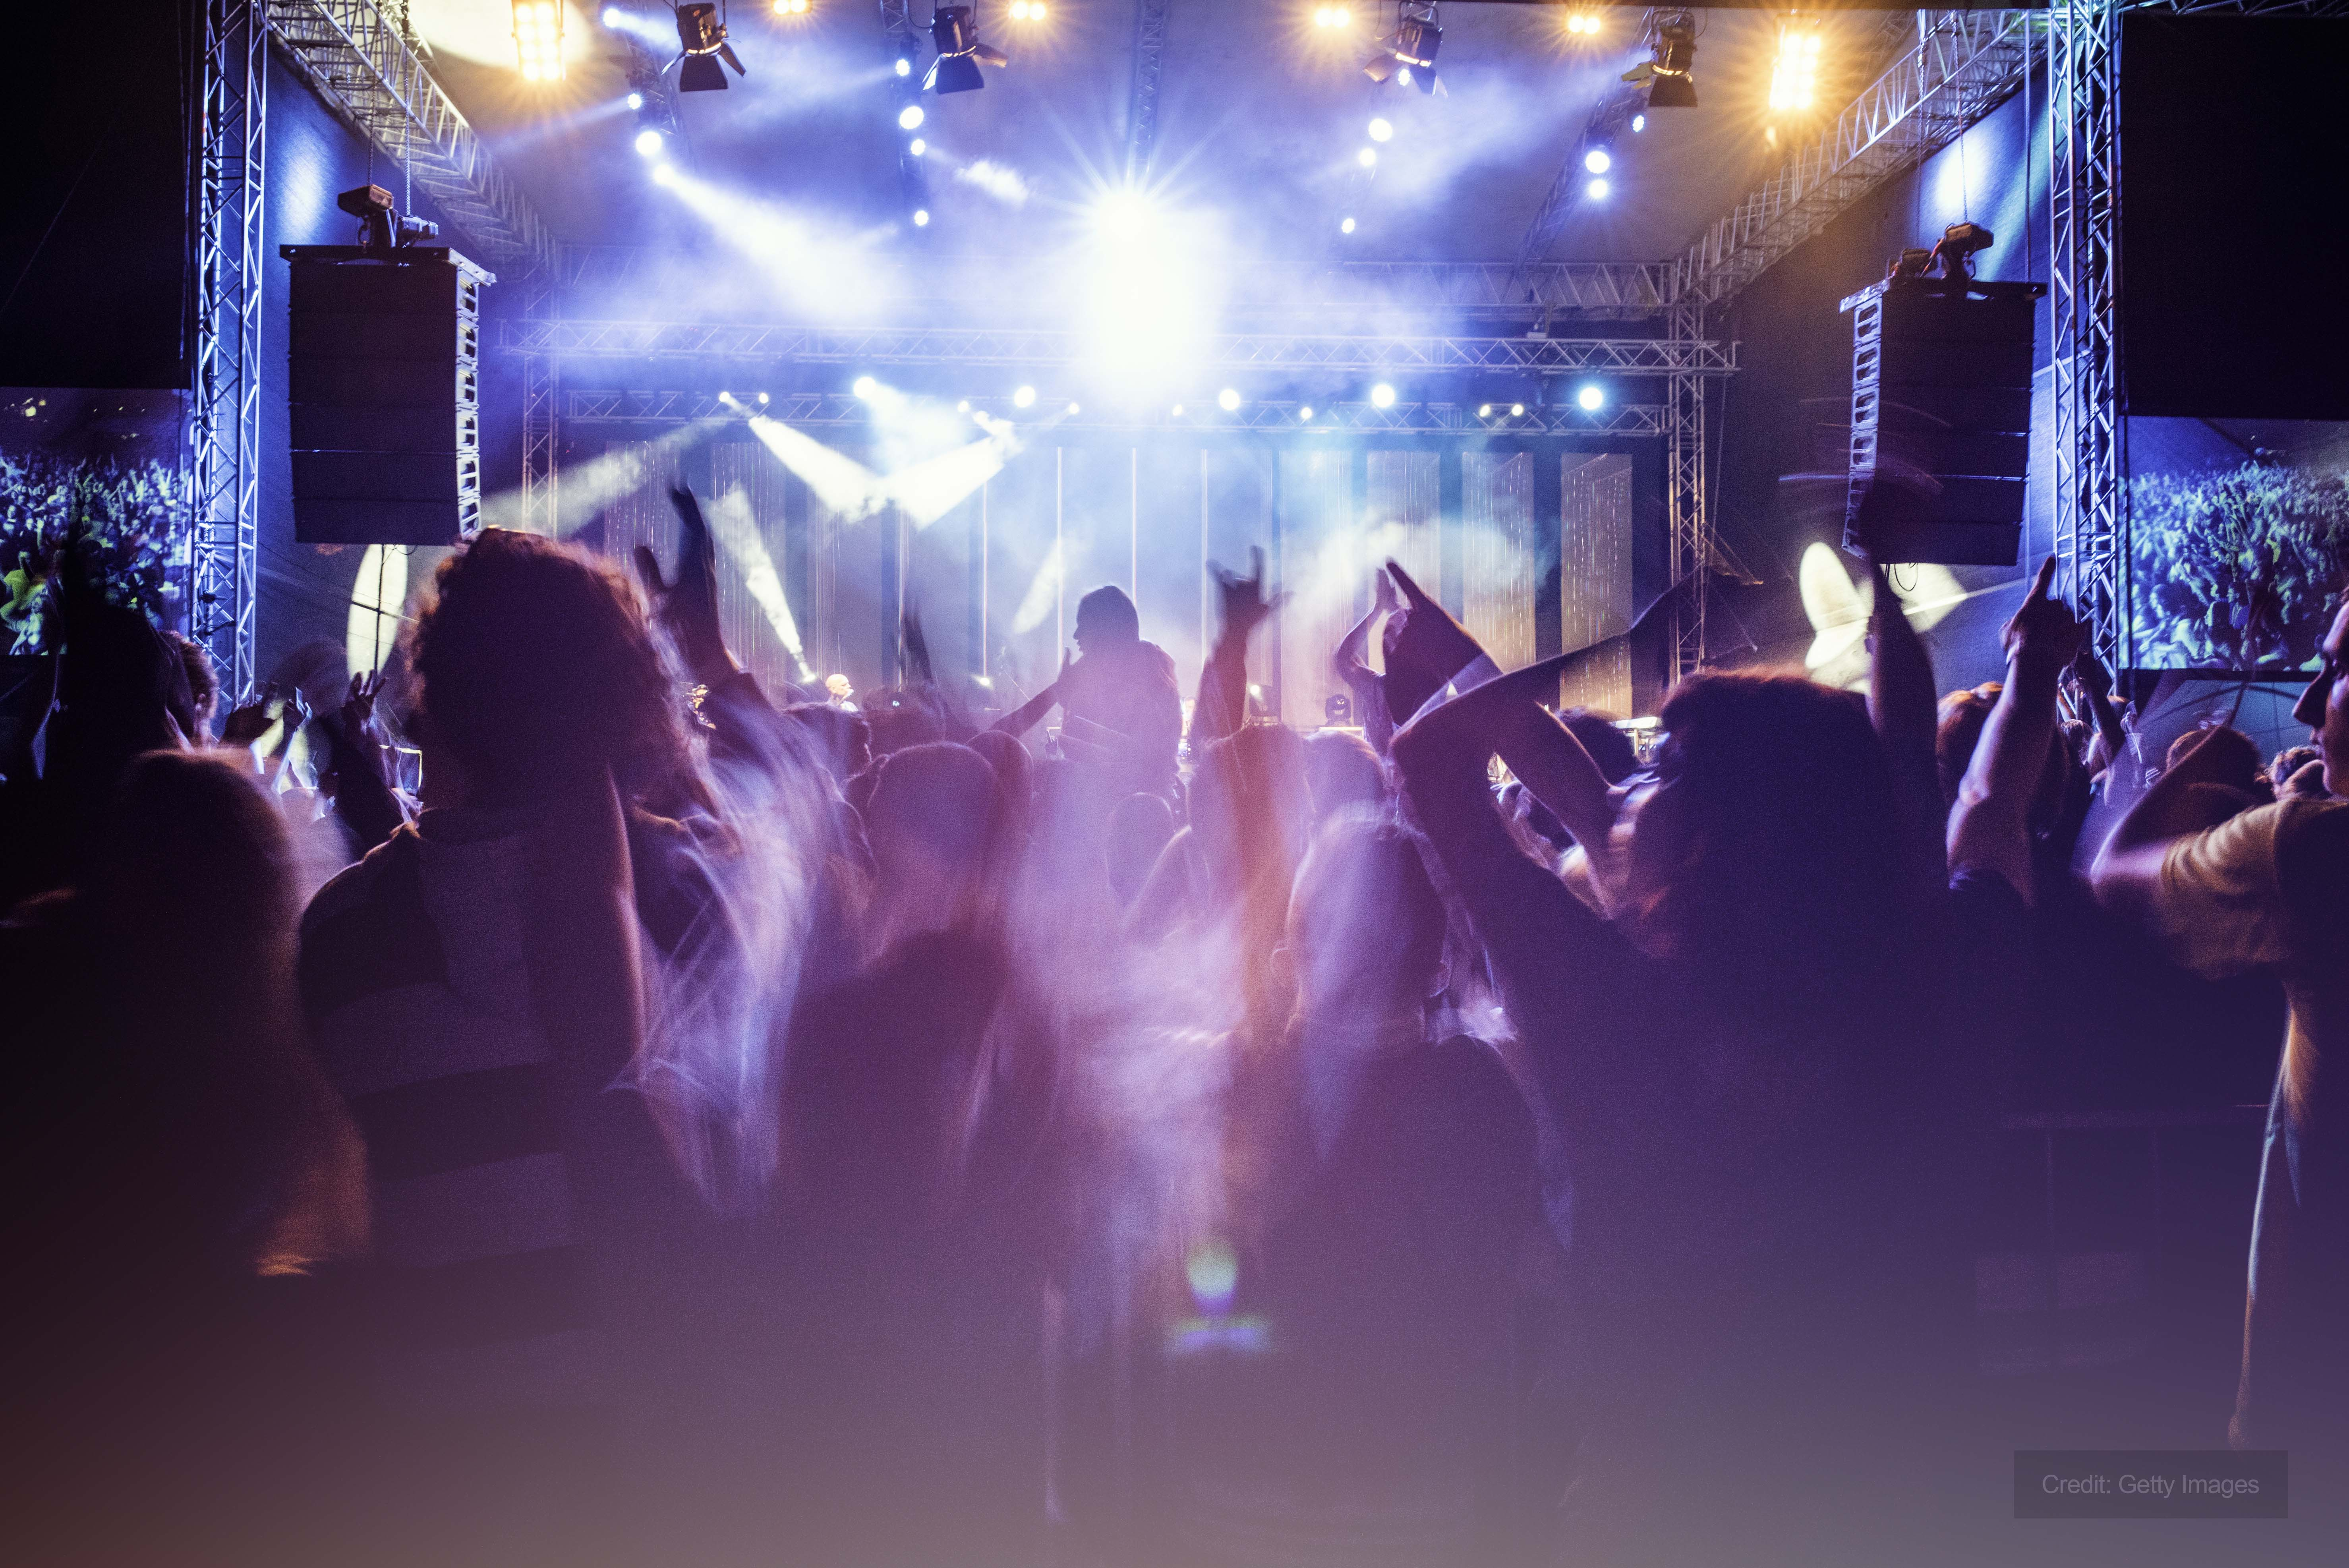 Concert venue in Scotland assisted by Andrews Heat for Hire